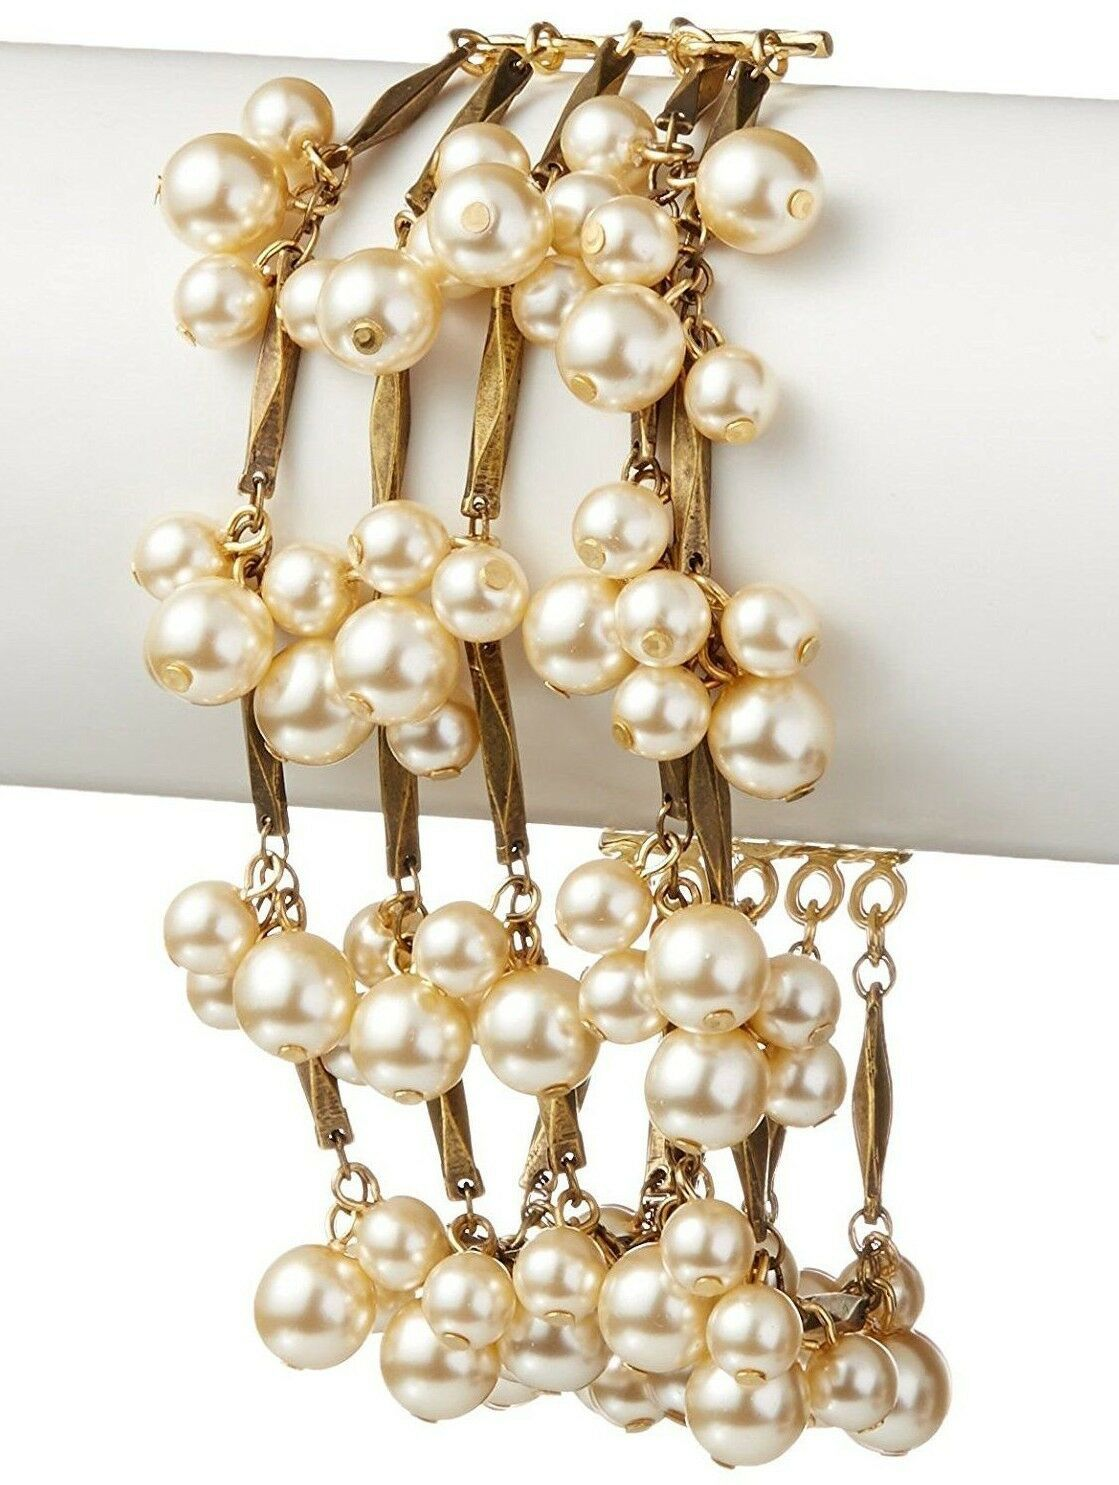 David Aubrey Hadrien USA Made Chain & Simulated Pearl Fringe Bracelet NWT